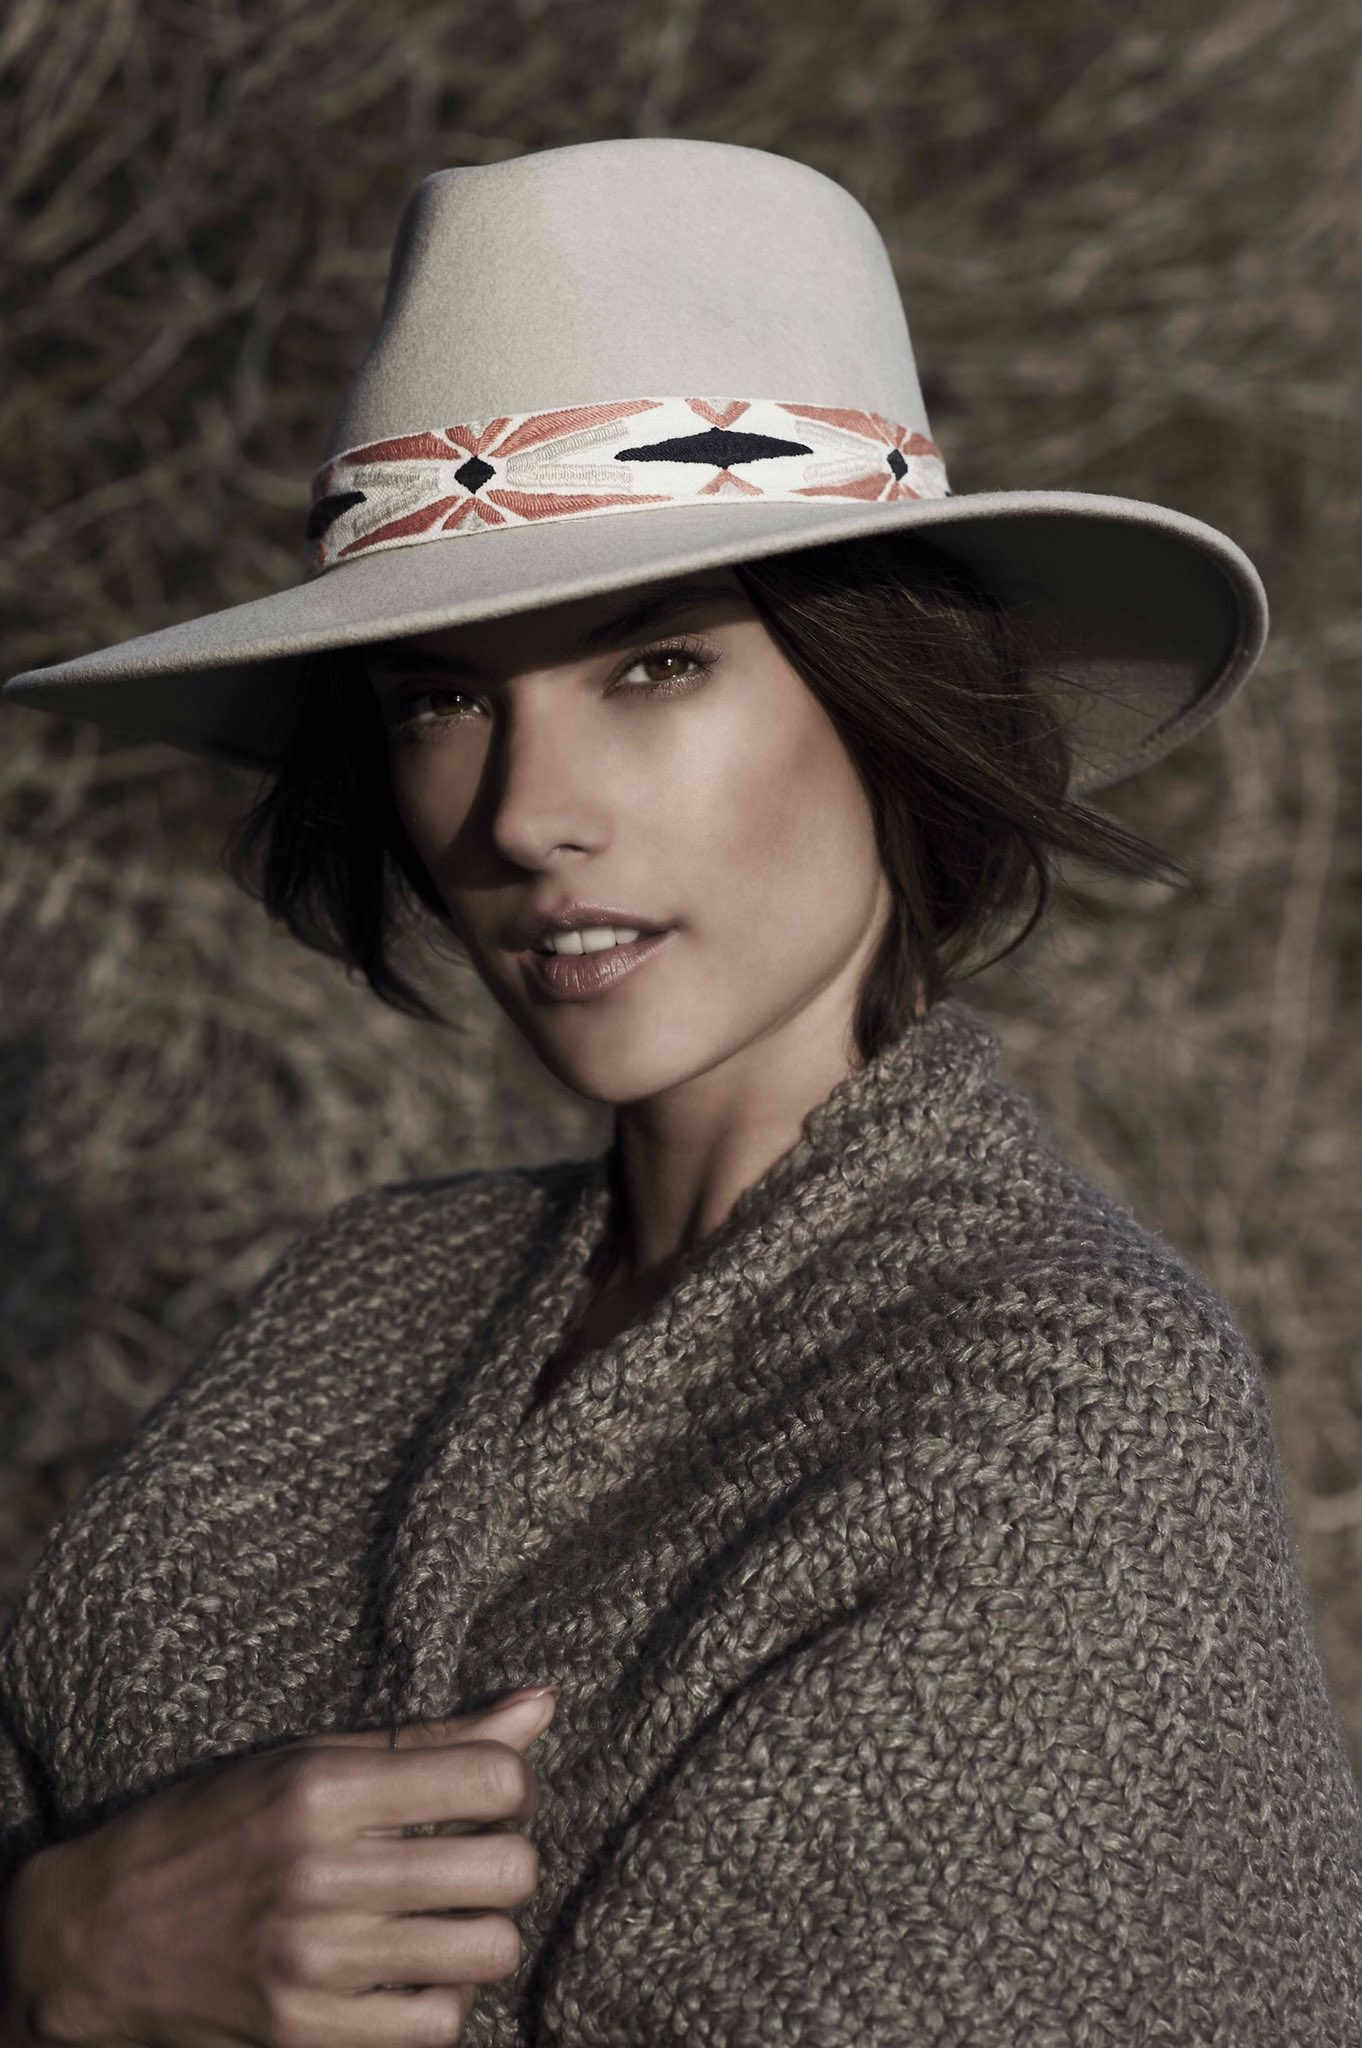 Over the moon 🌙 @alebyalessandra Luna hat now at @freepeople! https://t.co/A4vfAHhwW2 https://t.co/tXfQqvcC2L